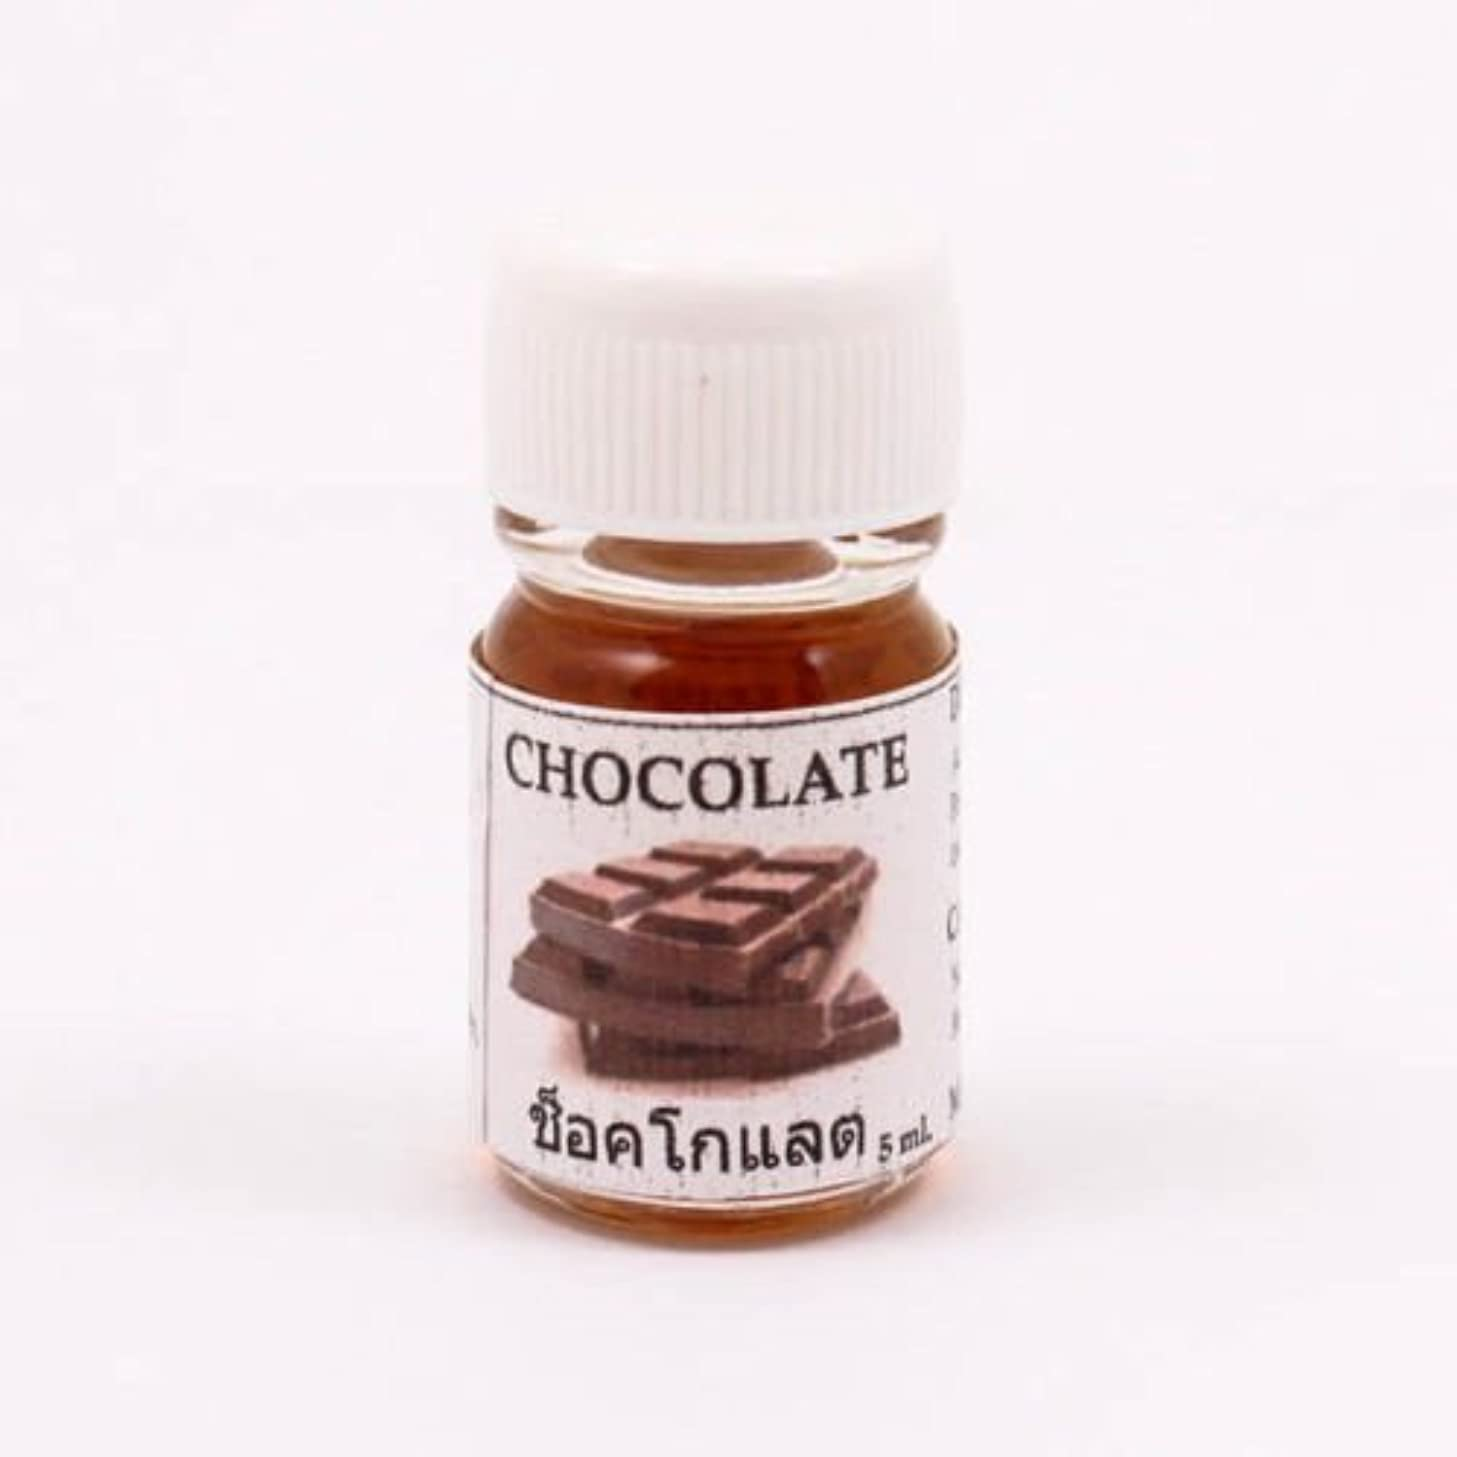 時計回り恥ずかしさ壊す6X Chocalate Aroma Fragrance Essential Oil 5ML. cc Diffuser Burner Therapy